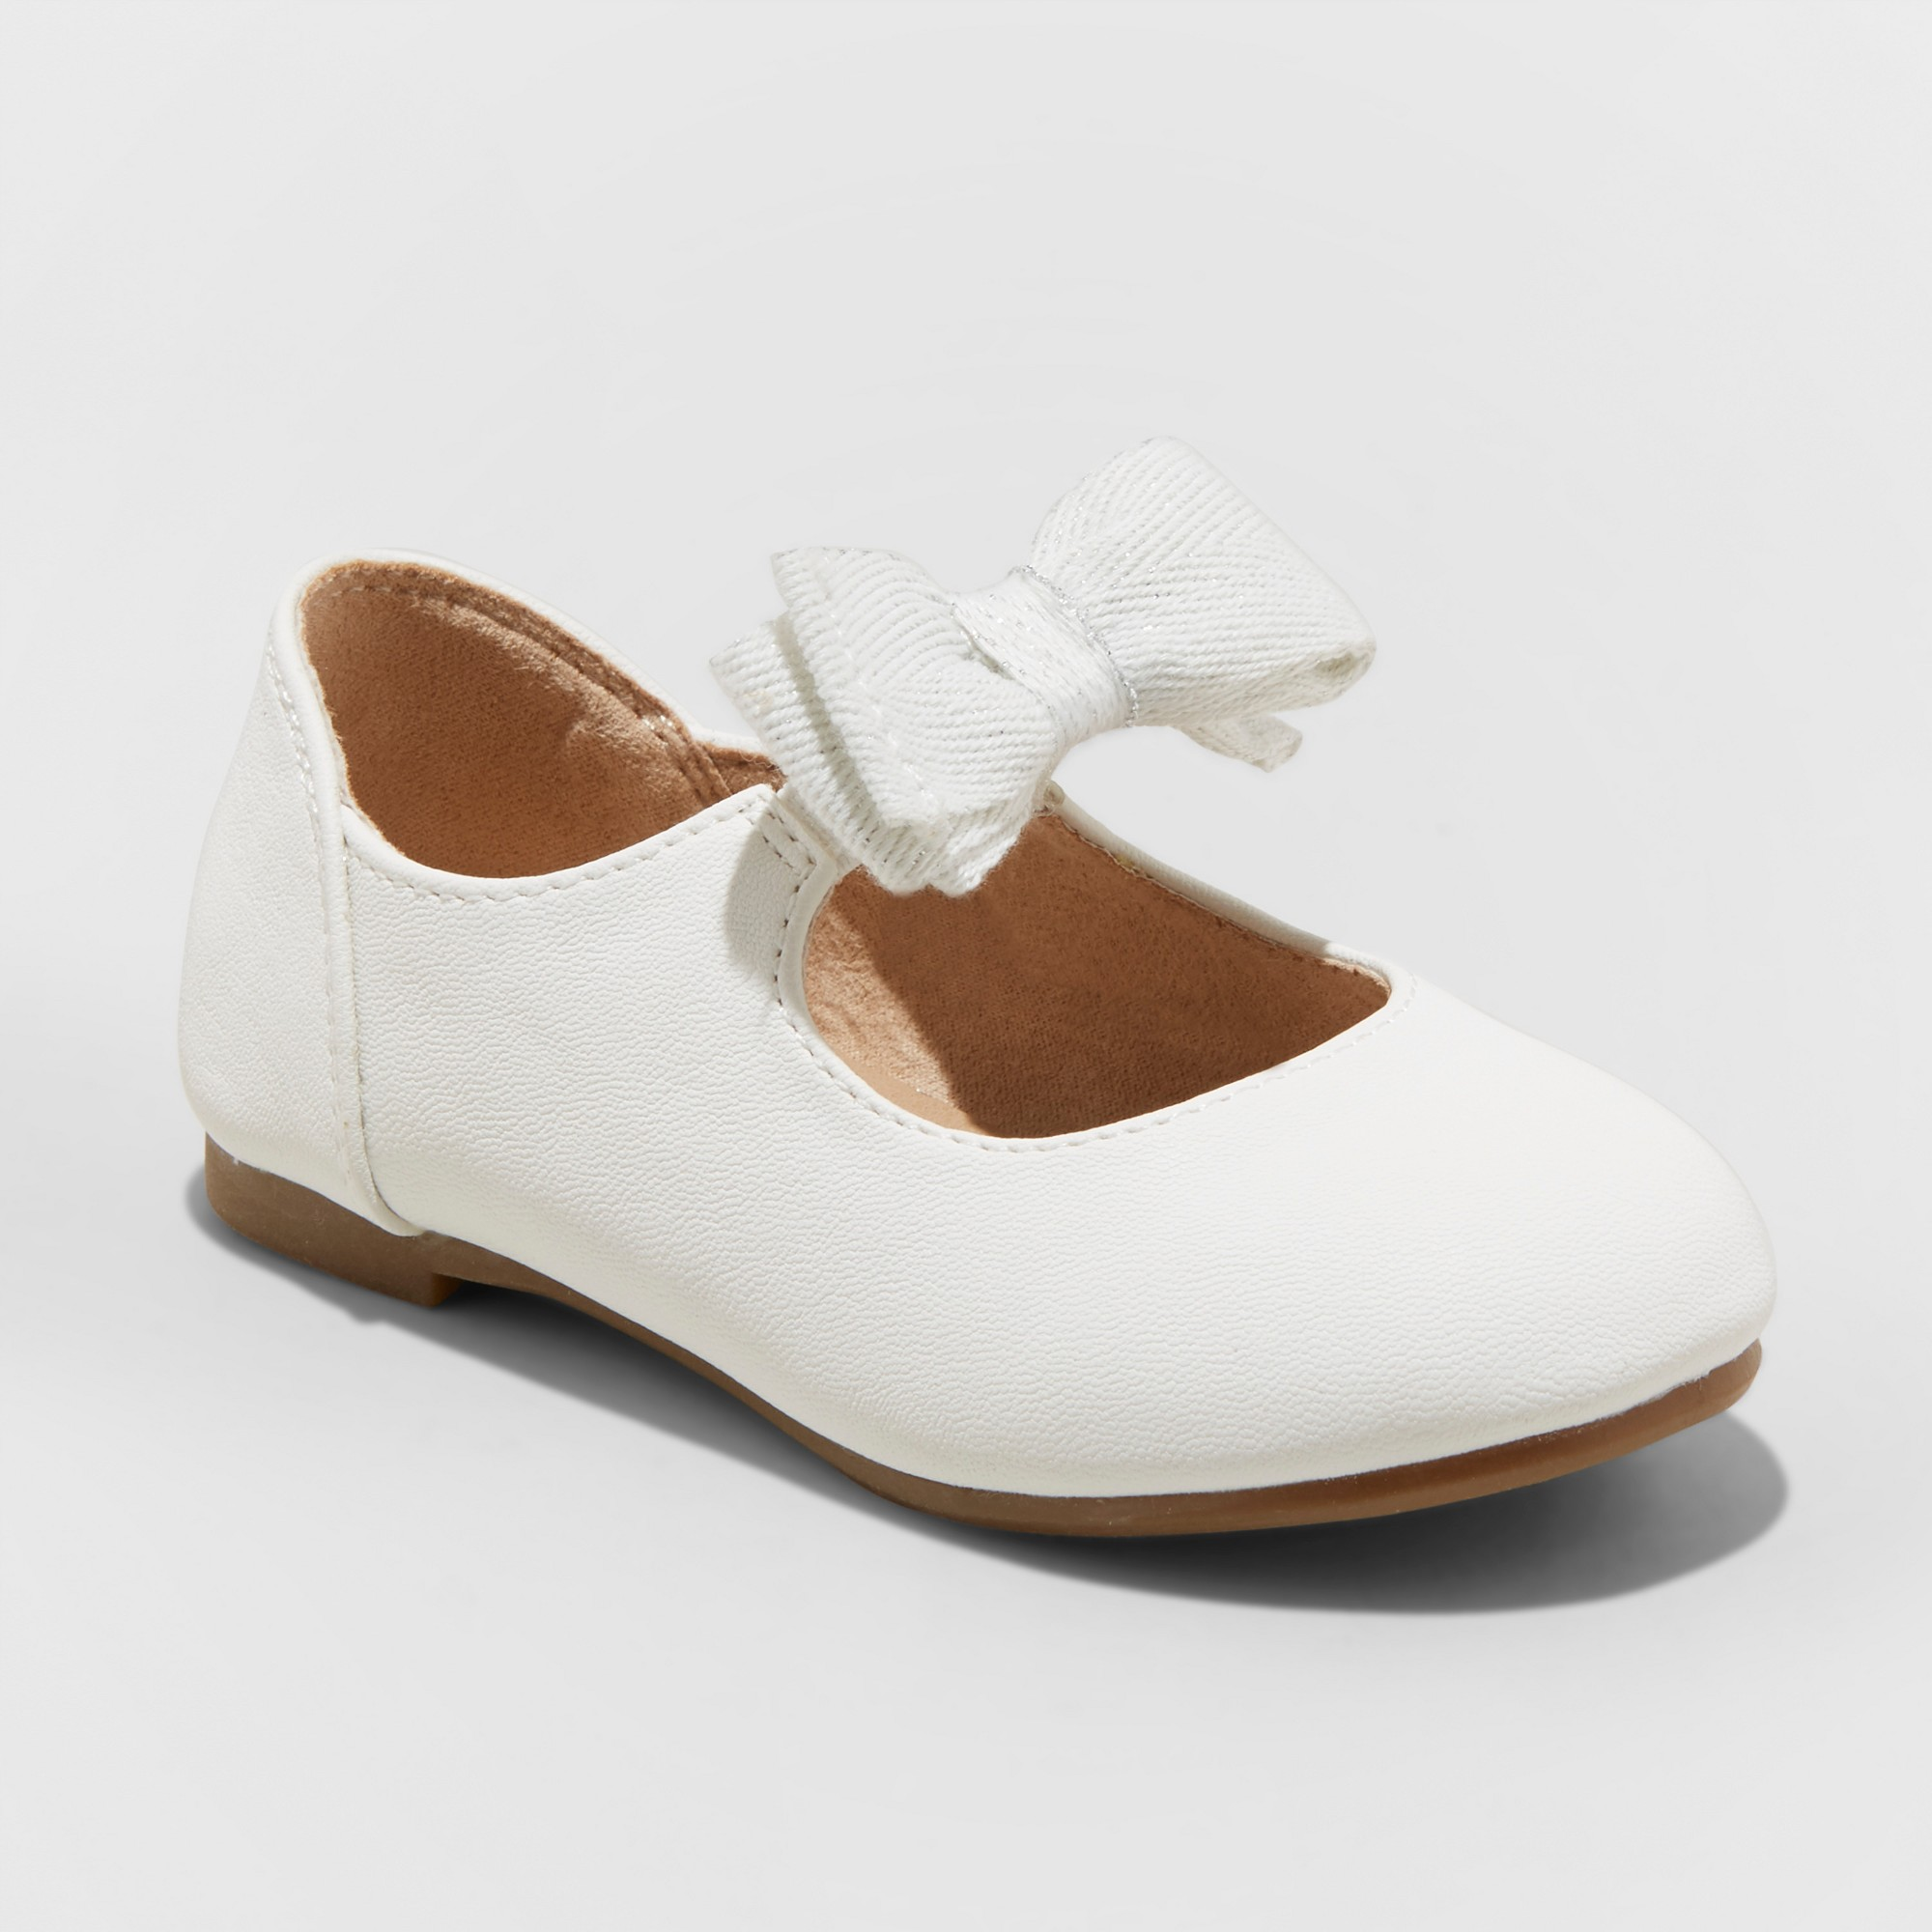 a5e2e28a267c Toddler Girls  Belle Mary Jane Shoe - Cat   Jack White 5